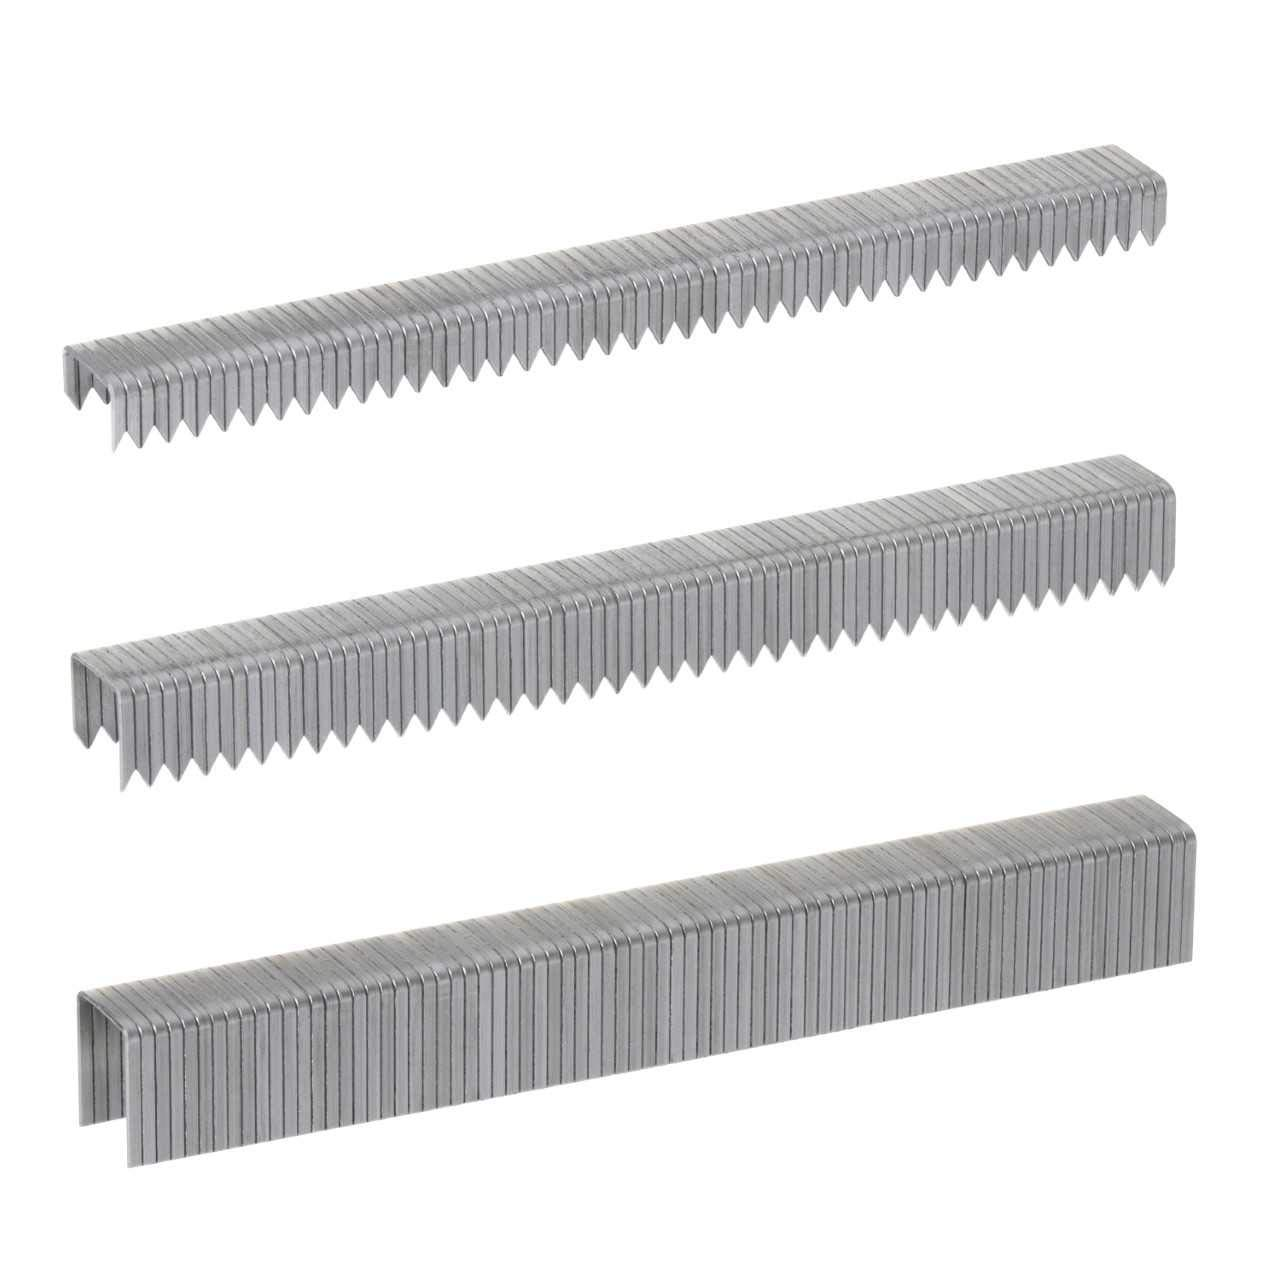 ARROW T50 Staples 50MP, 3-Pack by ARROW (Image #2)